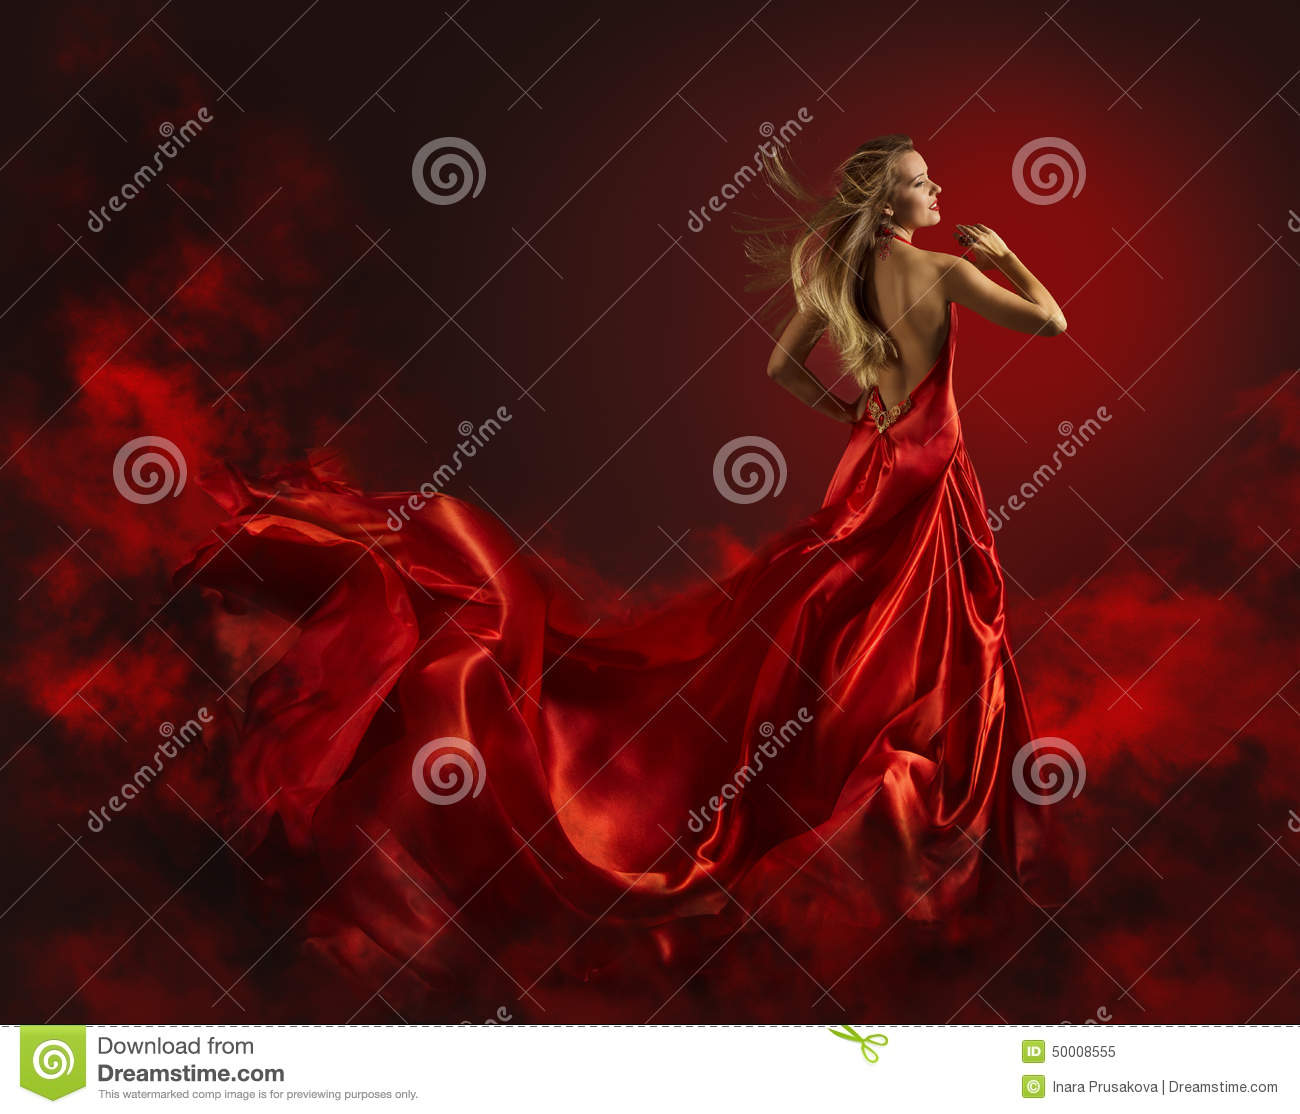 Woman in Red Dress, Lady Fantasy Gown Flying and Waving